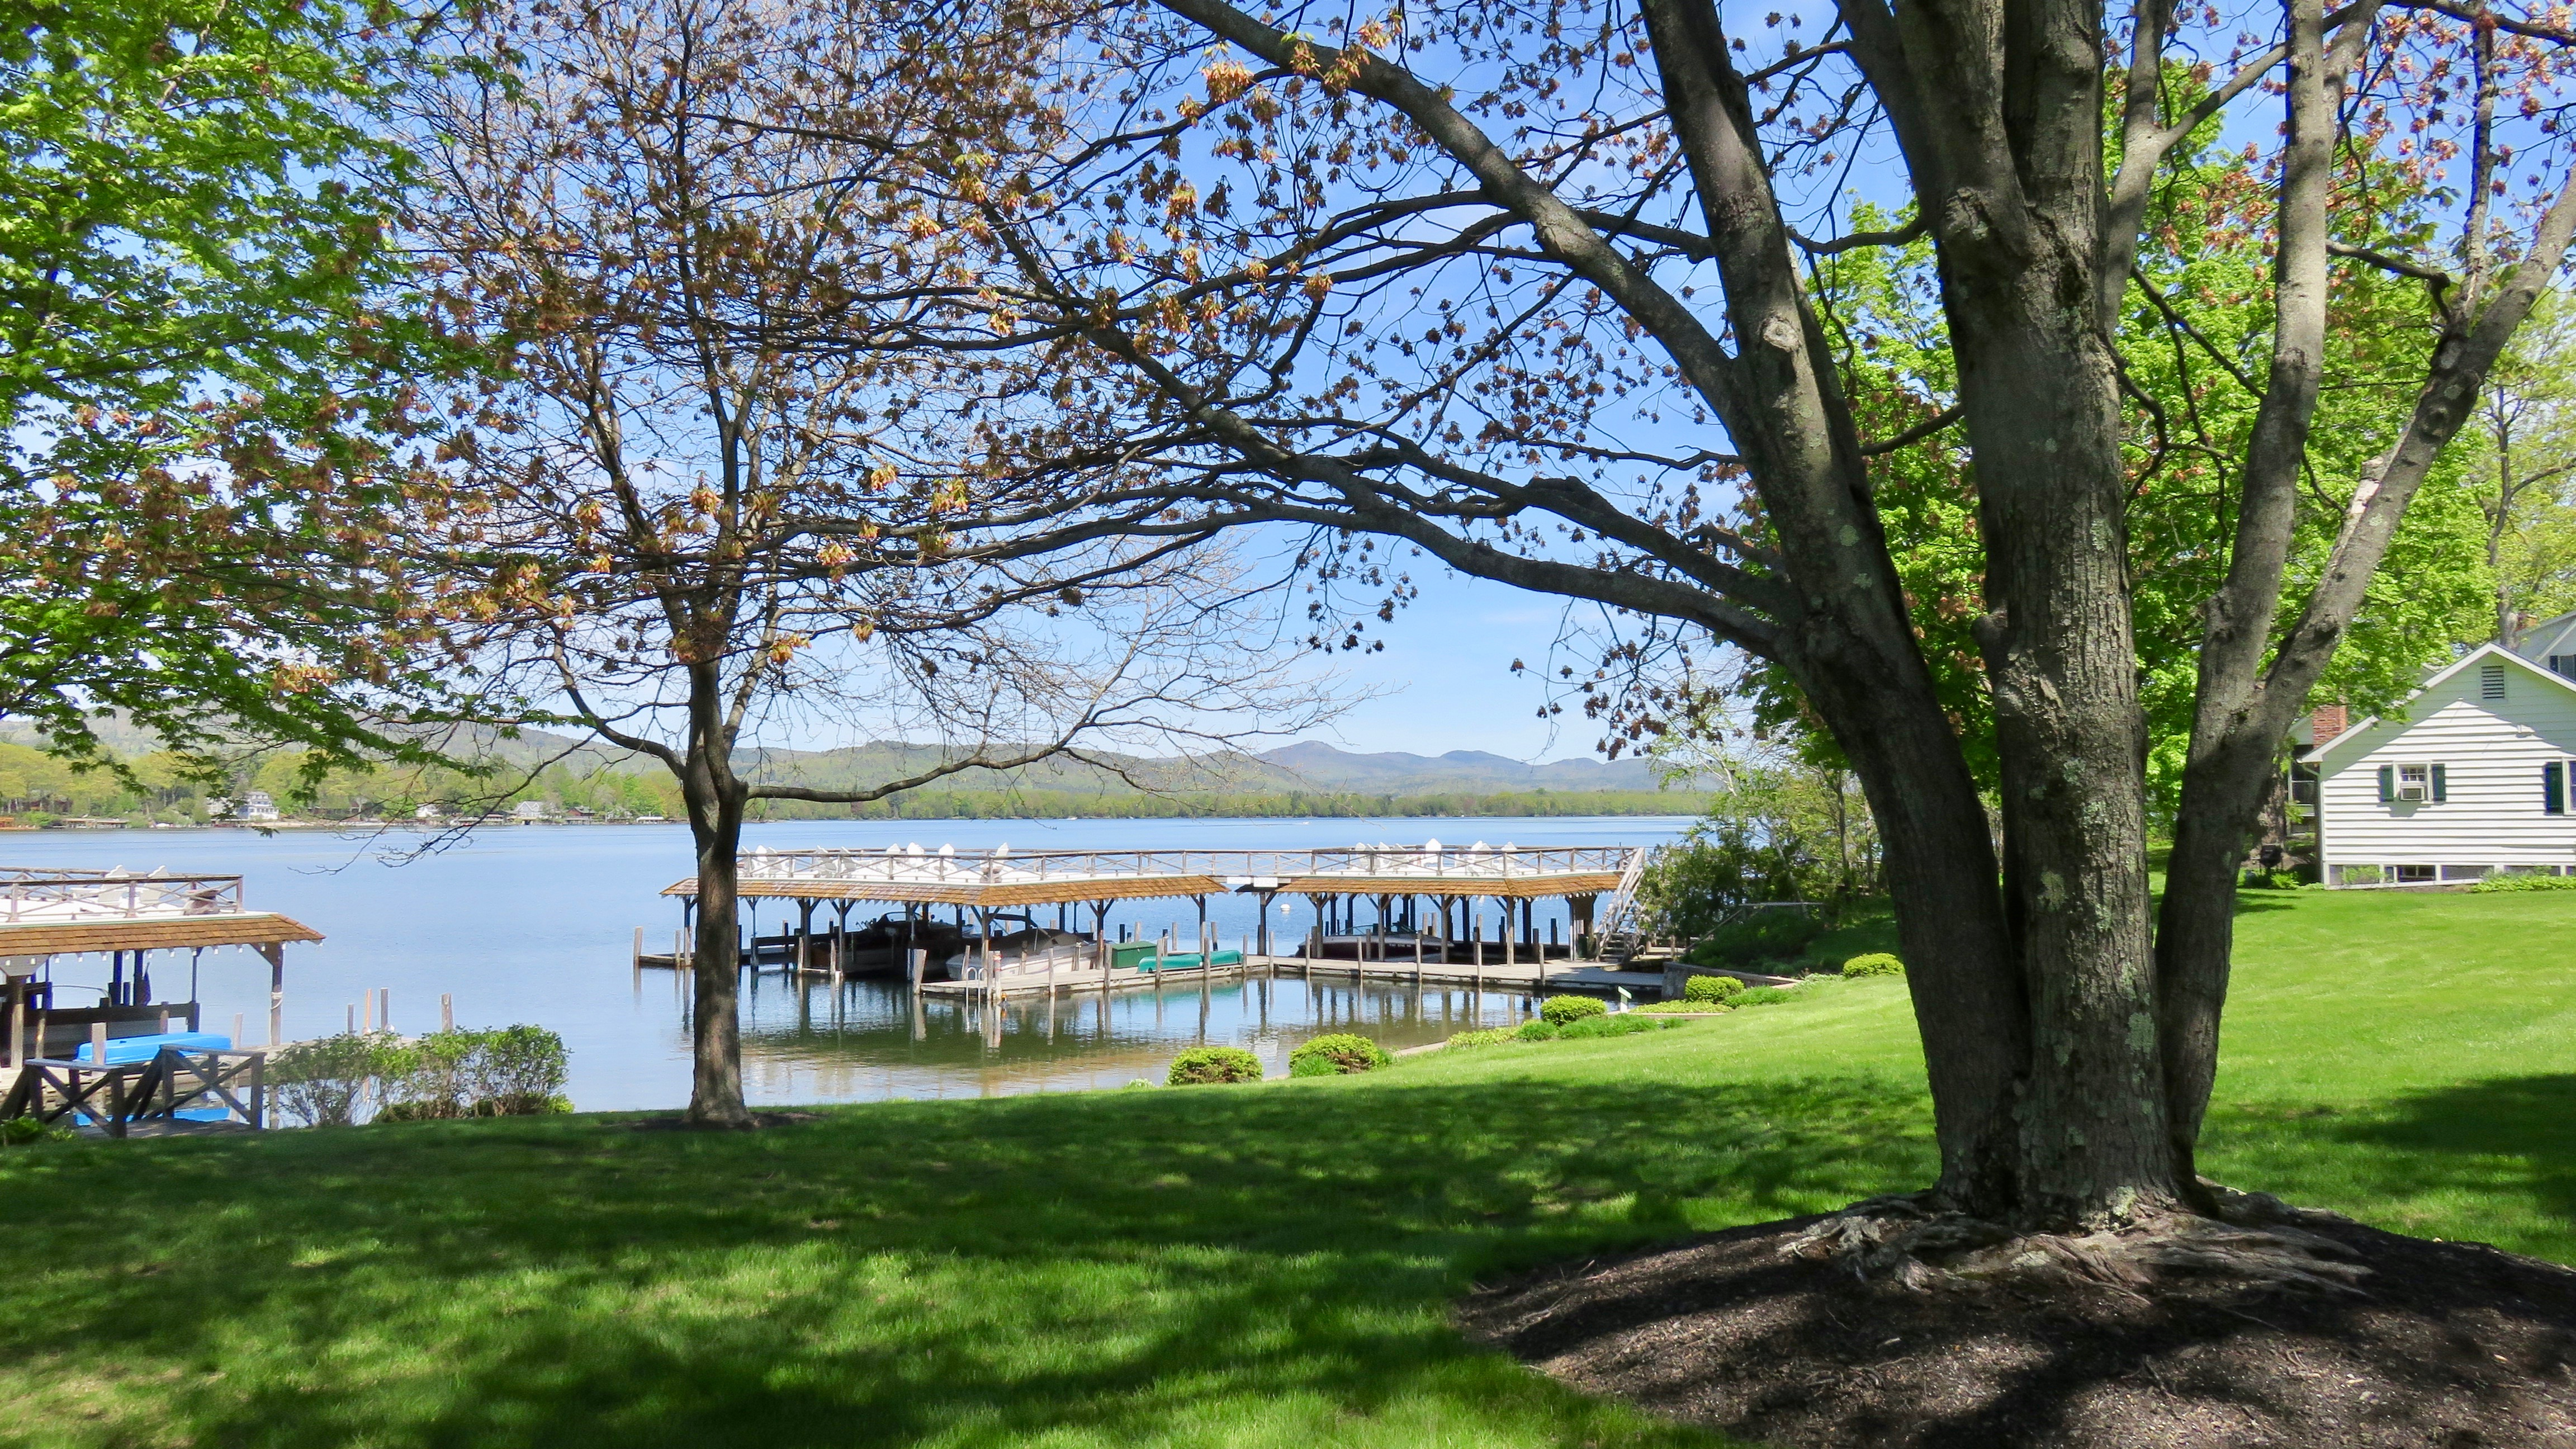 Takundewide Cottages on Lake George grounds overlooking lake in early May